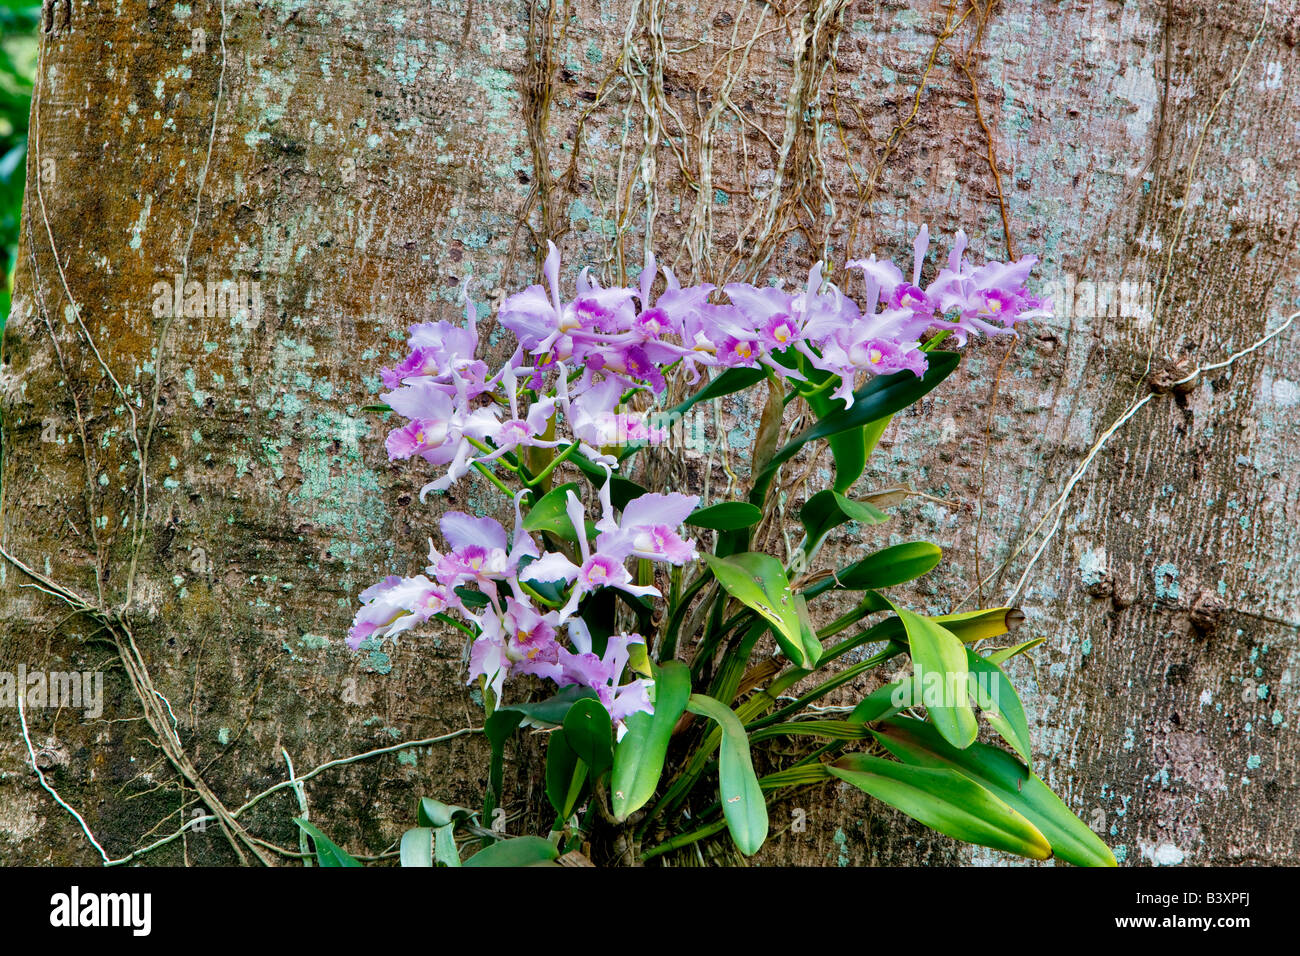 orchideen wachsen auf baum im national tropical botanical garden kauai hawaii stockfoto bild. Black Bedroom Furniture Sets. Home Design Ideas